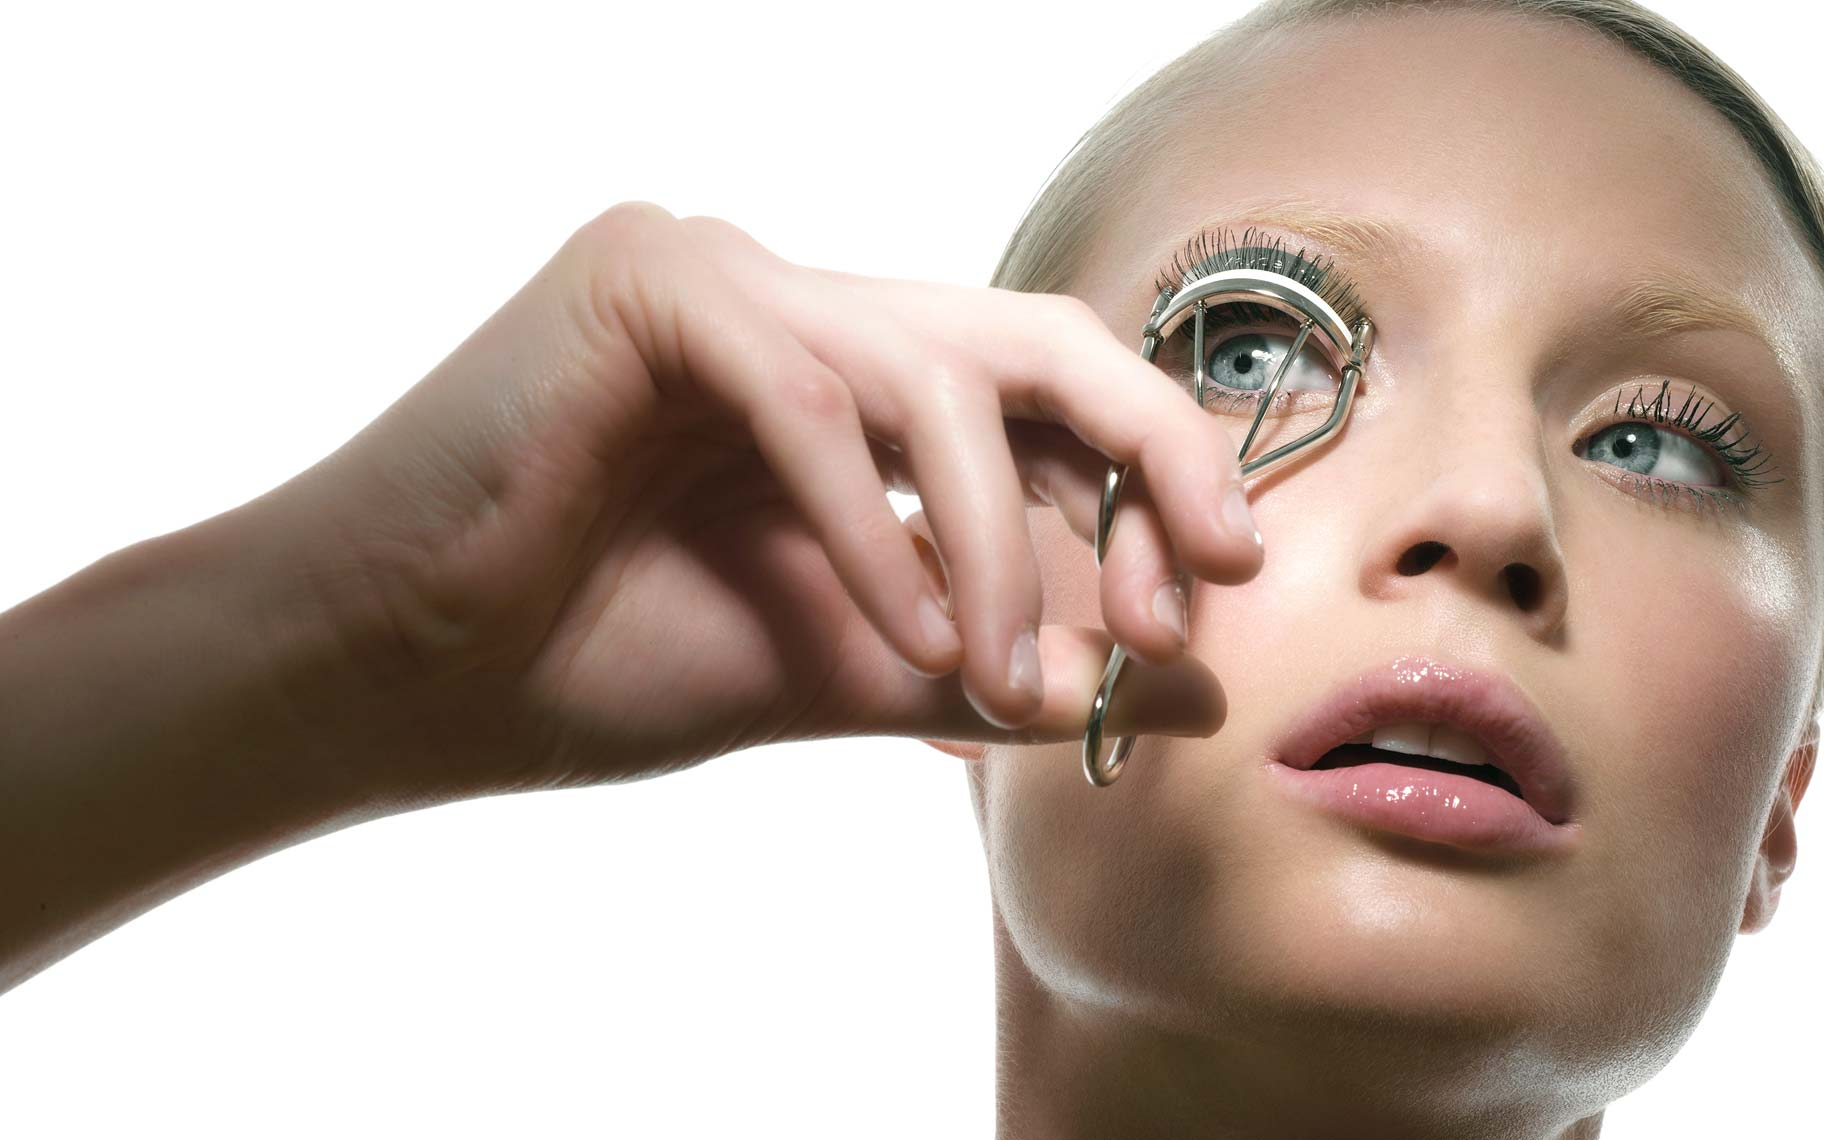 Jeff-Stephens-Pain-Eyelash-curler.jpg